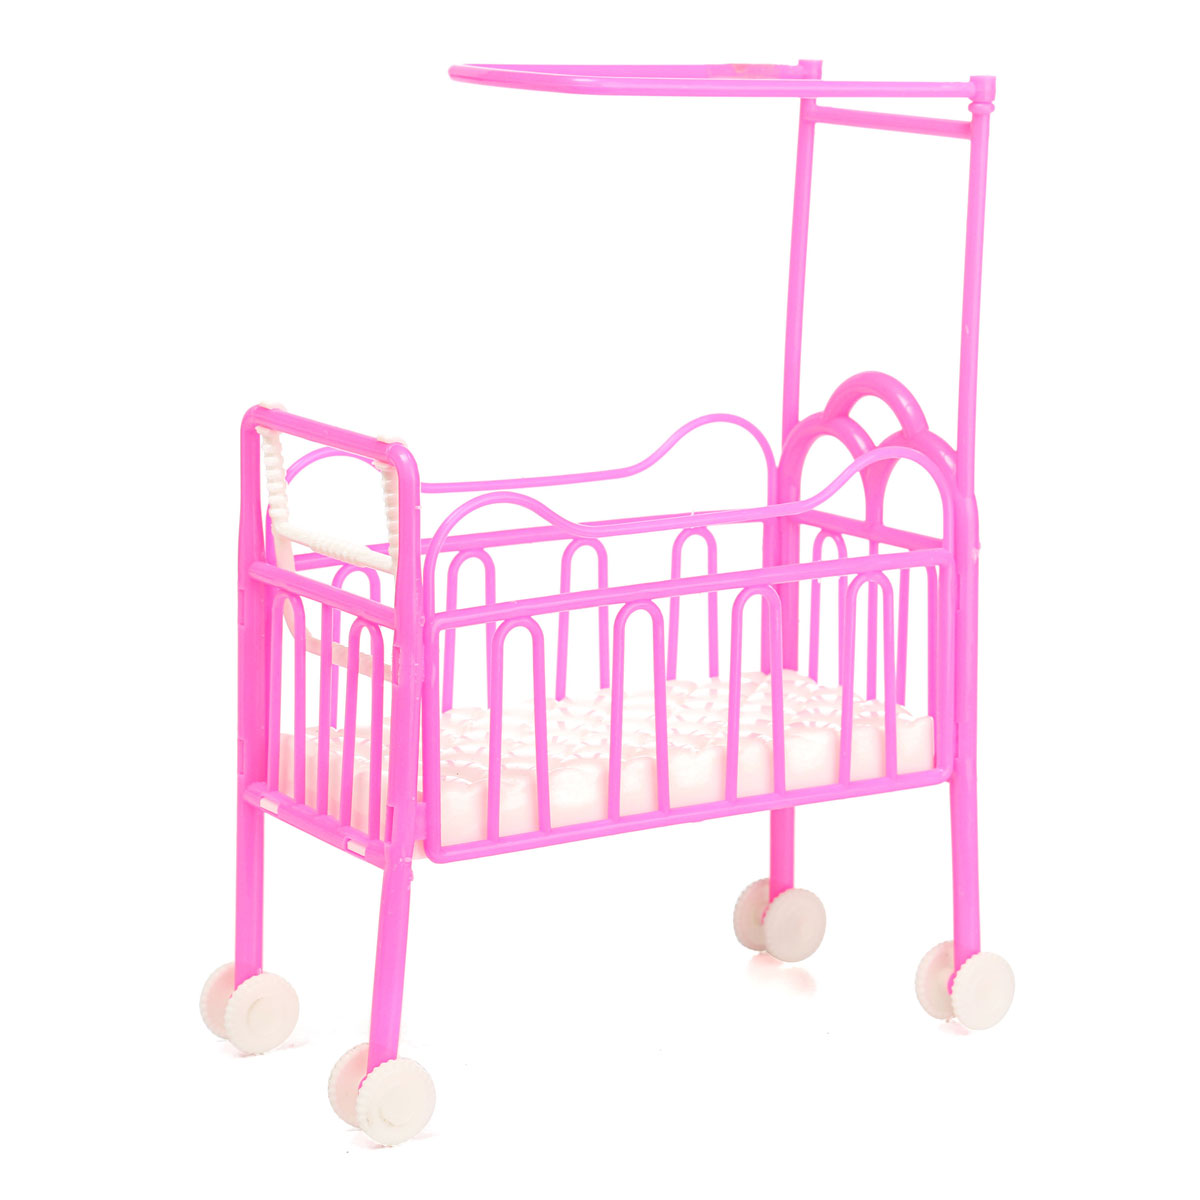 Baby bed accessories - Dolls Baby Bed For Princess Dollhouse Plastic Mini Cute Bed Doll House Furniture Toy Fantasy Sweet Dream Bedroom Accessories